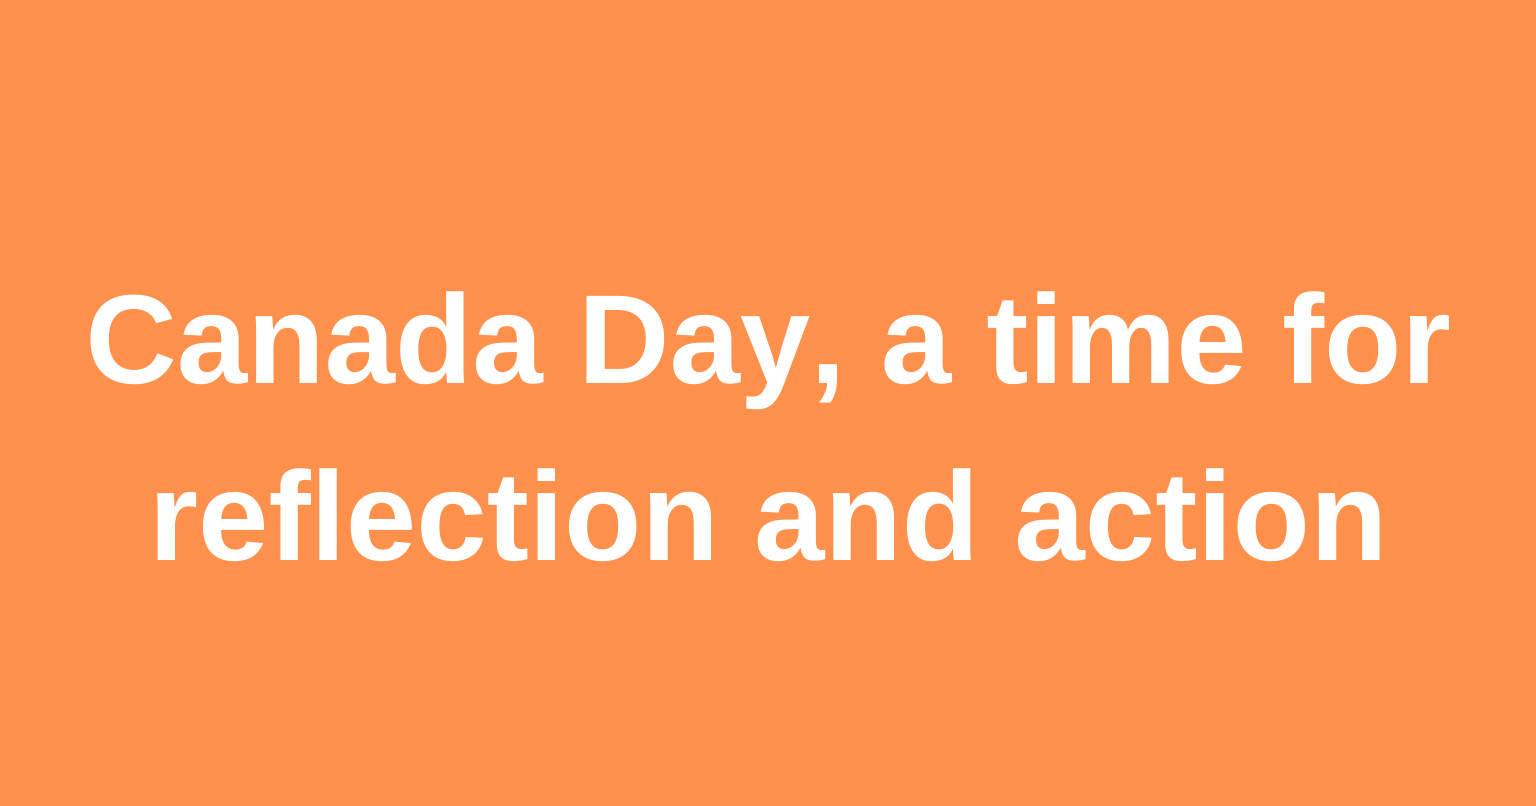 Canada Day, a time for reflection and action